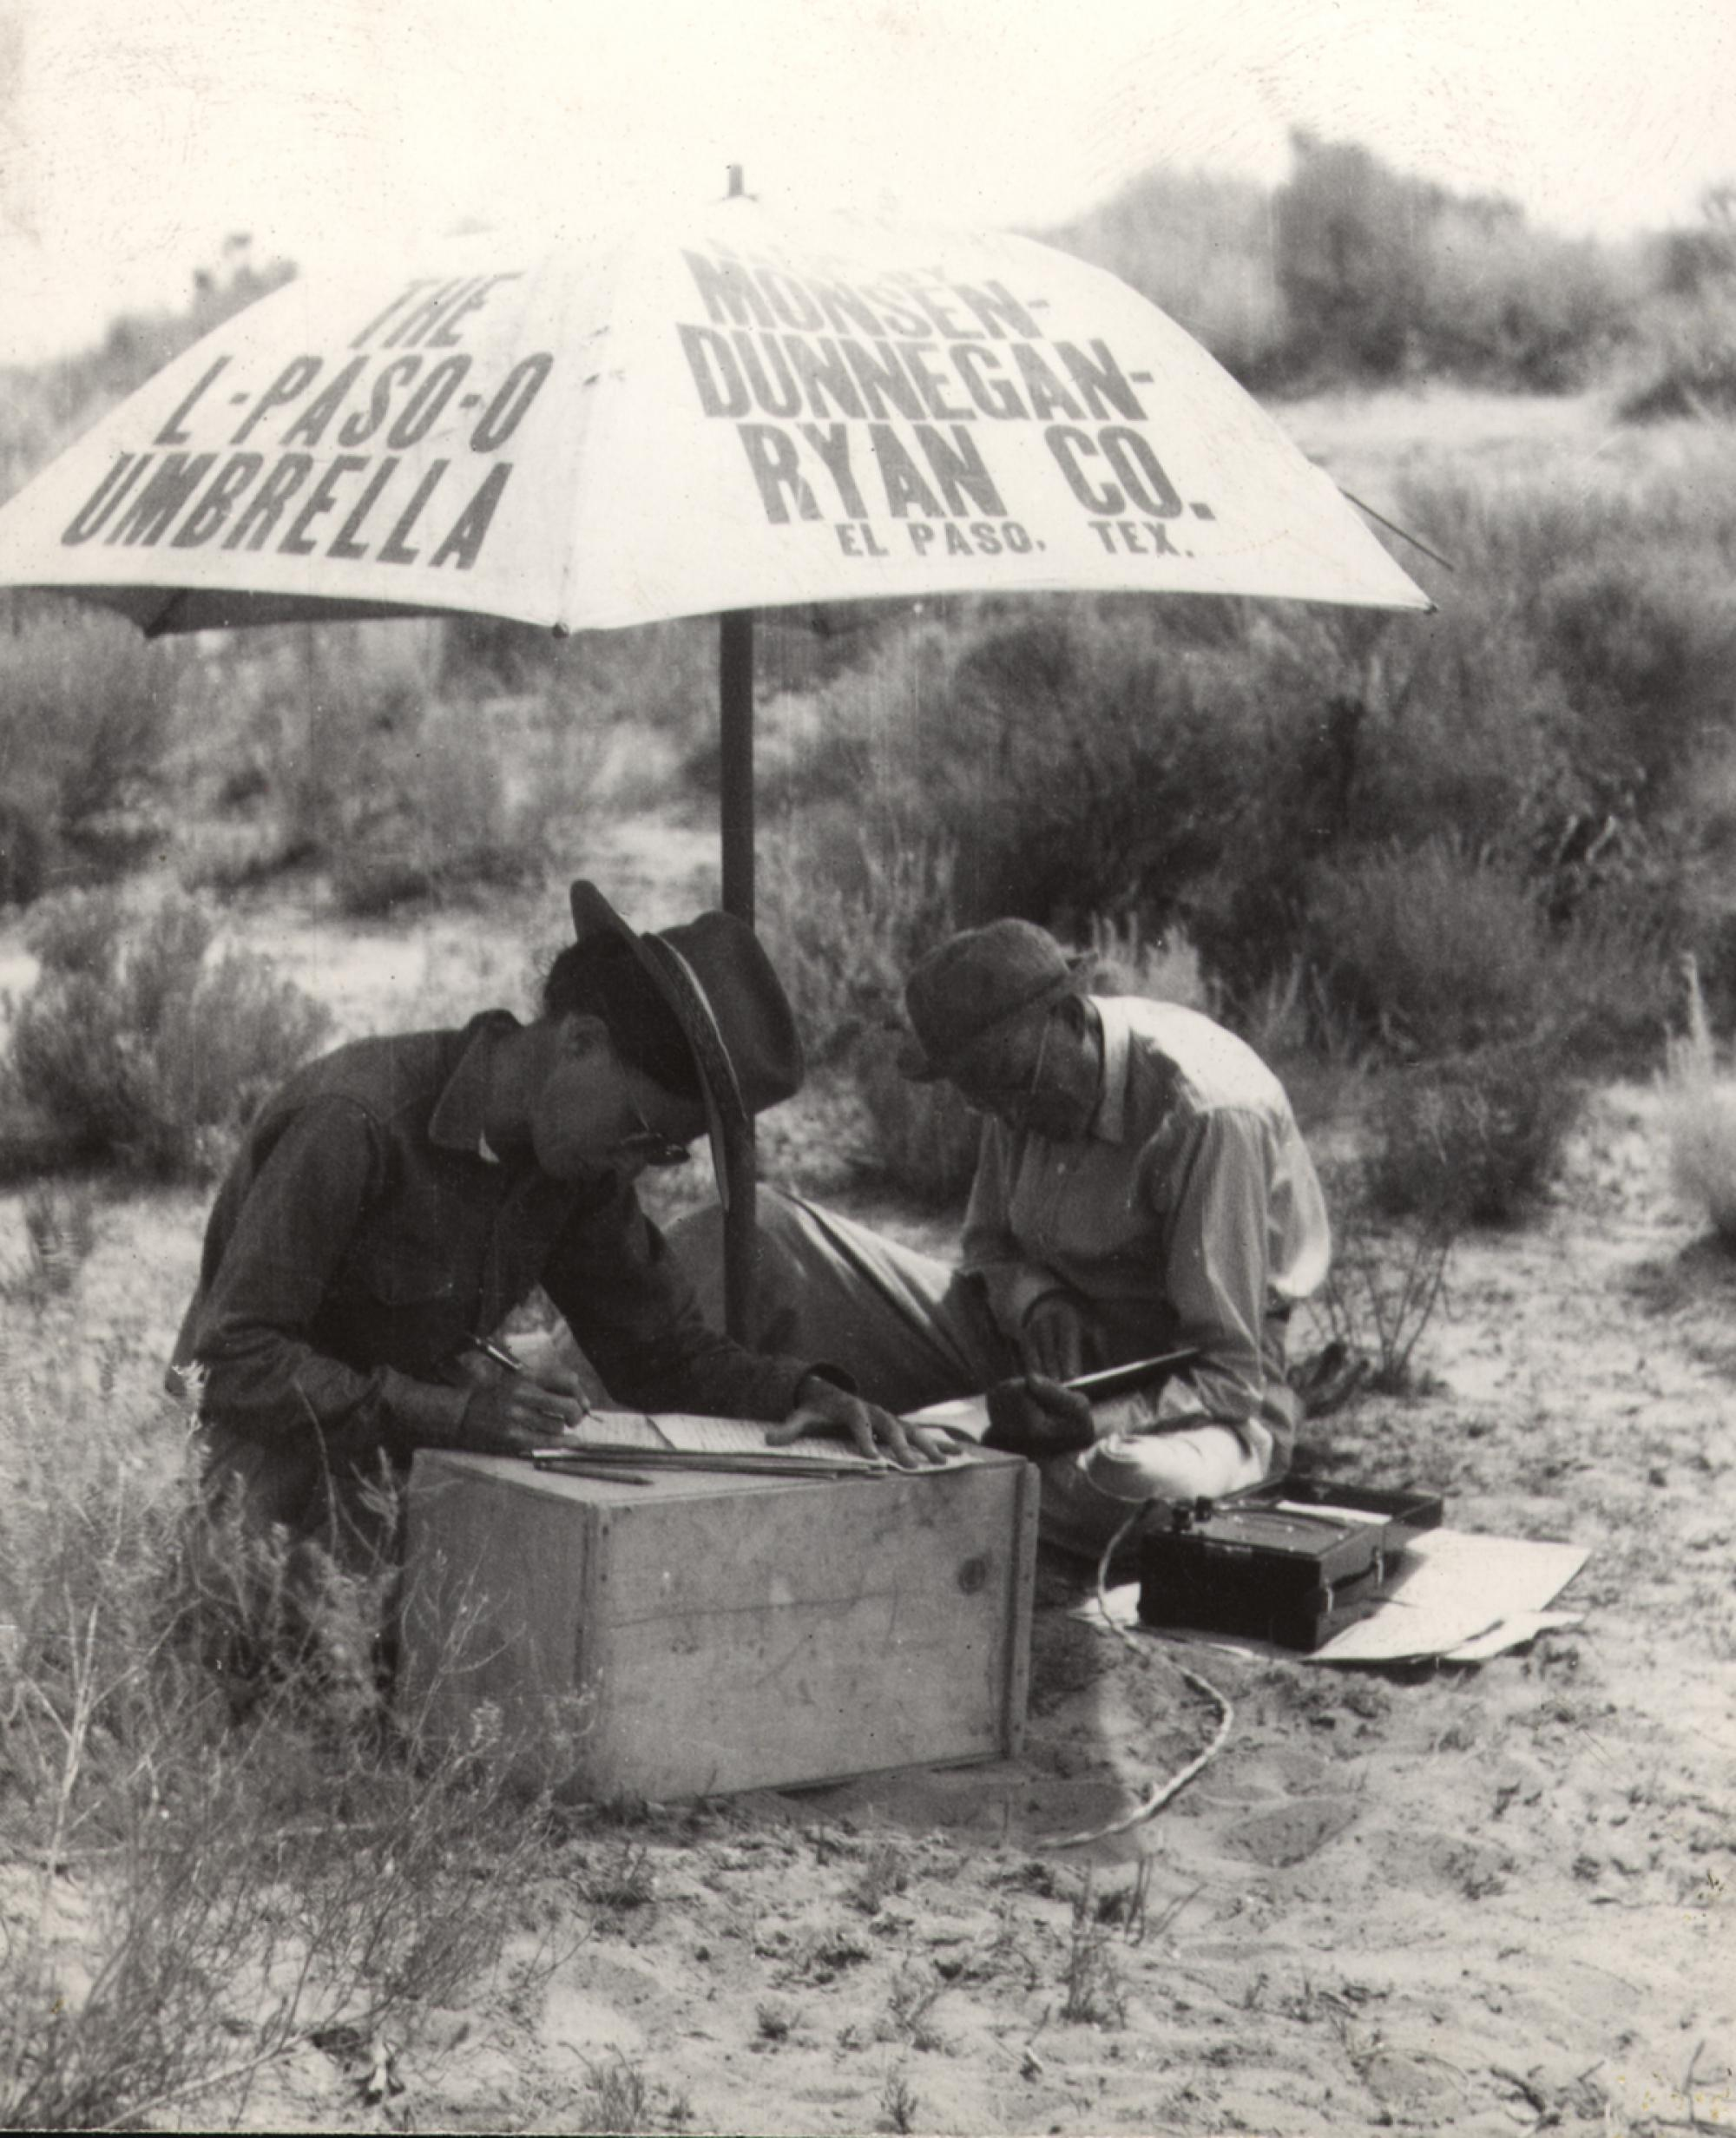 Watson Smith took this 1938 image of Anna Shepard and her father participating in excavations at the Awatovi Ruins on the Hopi Indian Reservation in northeastern Arizona.